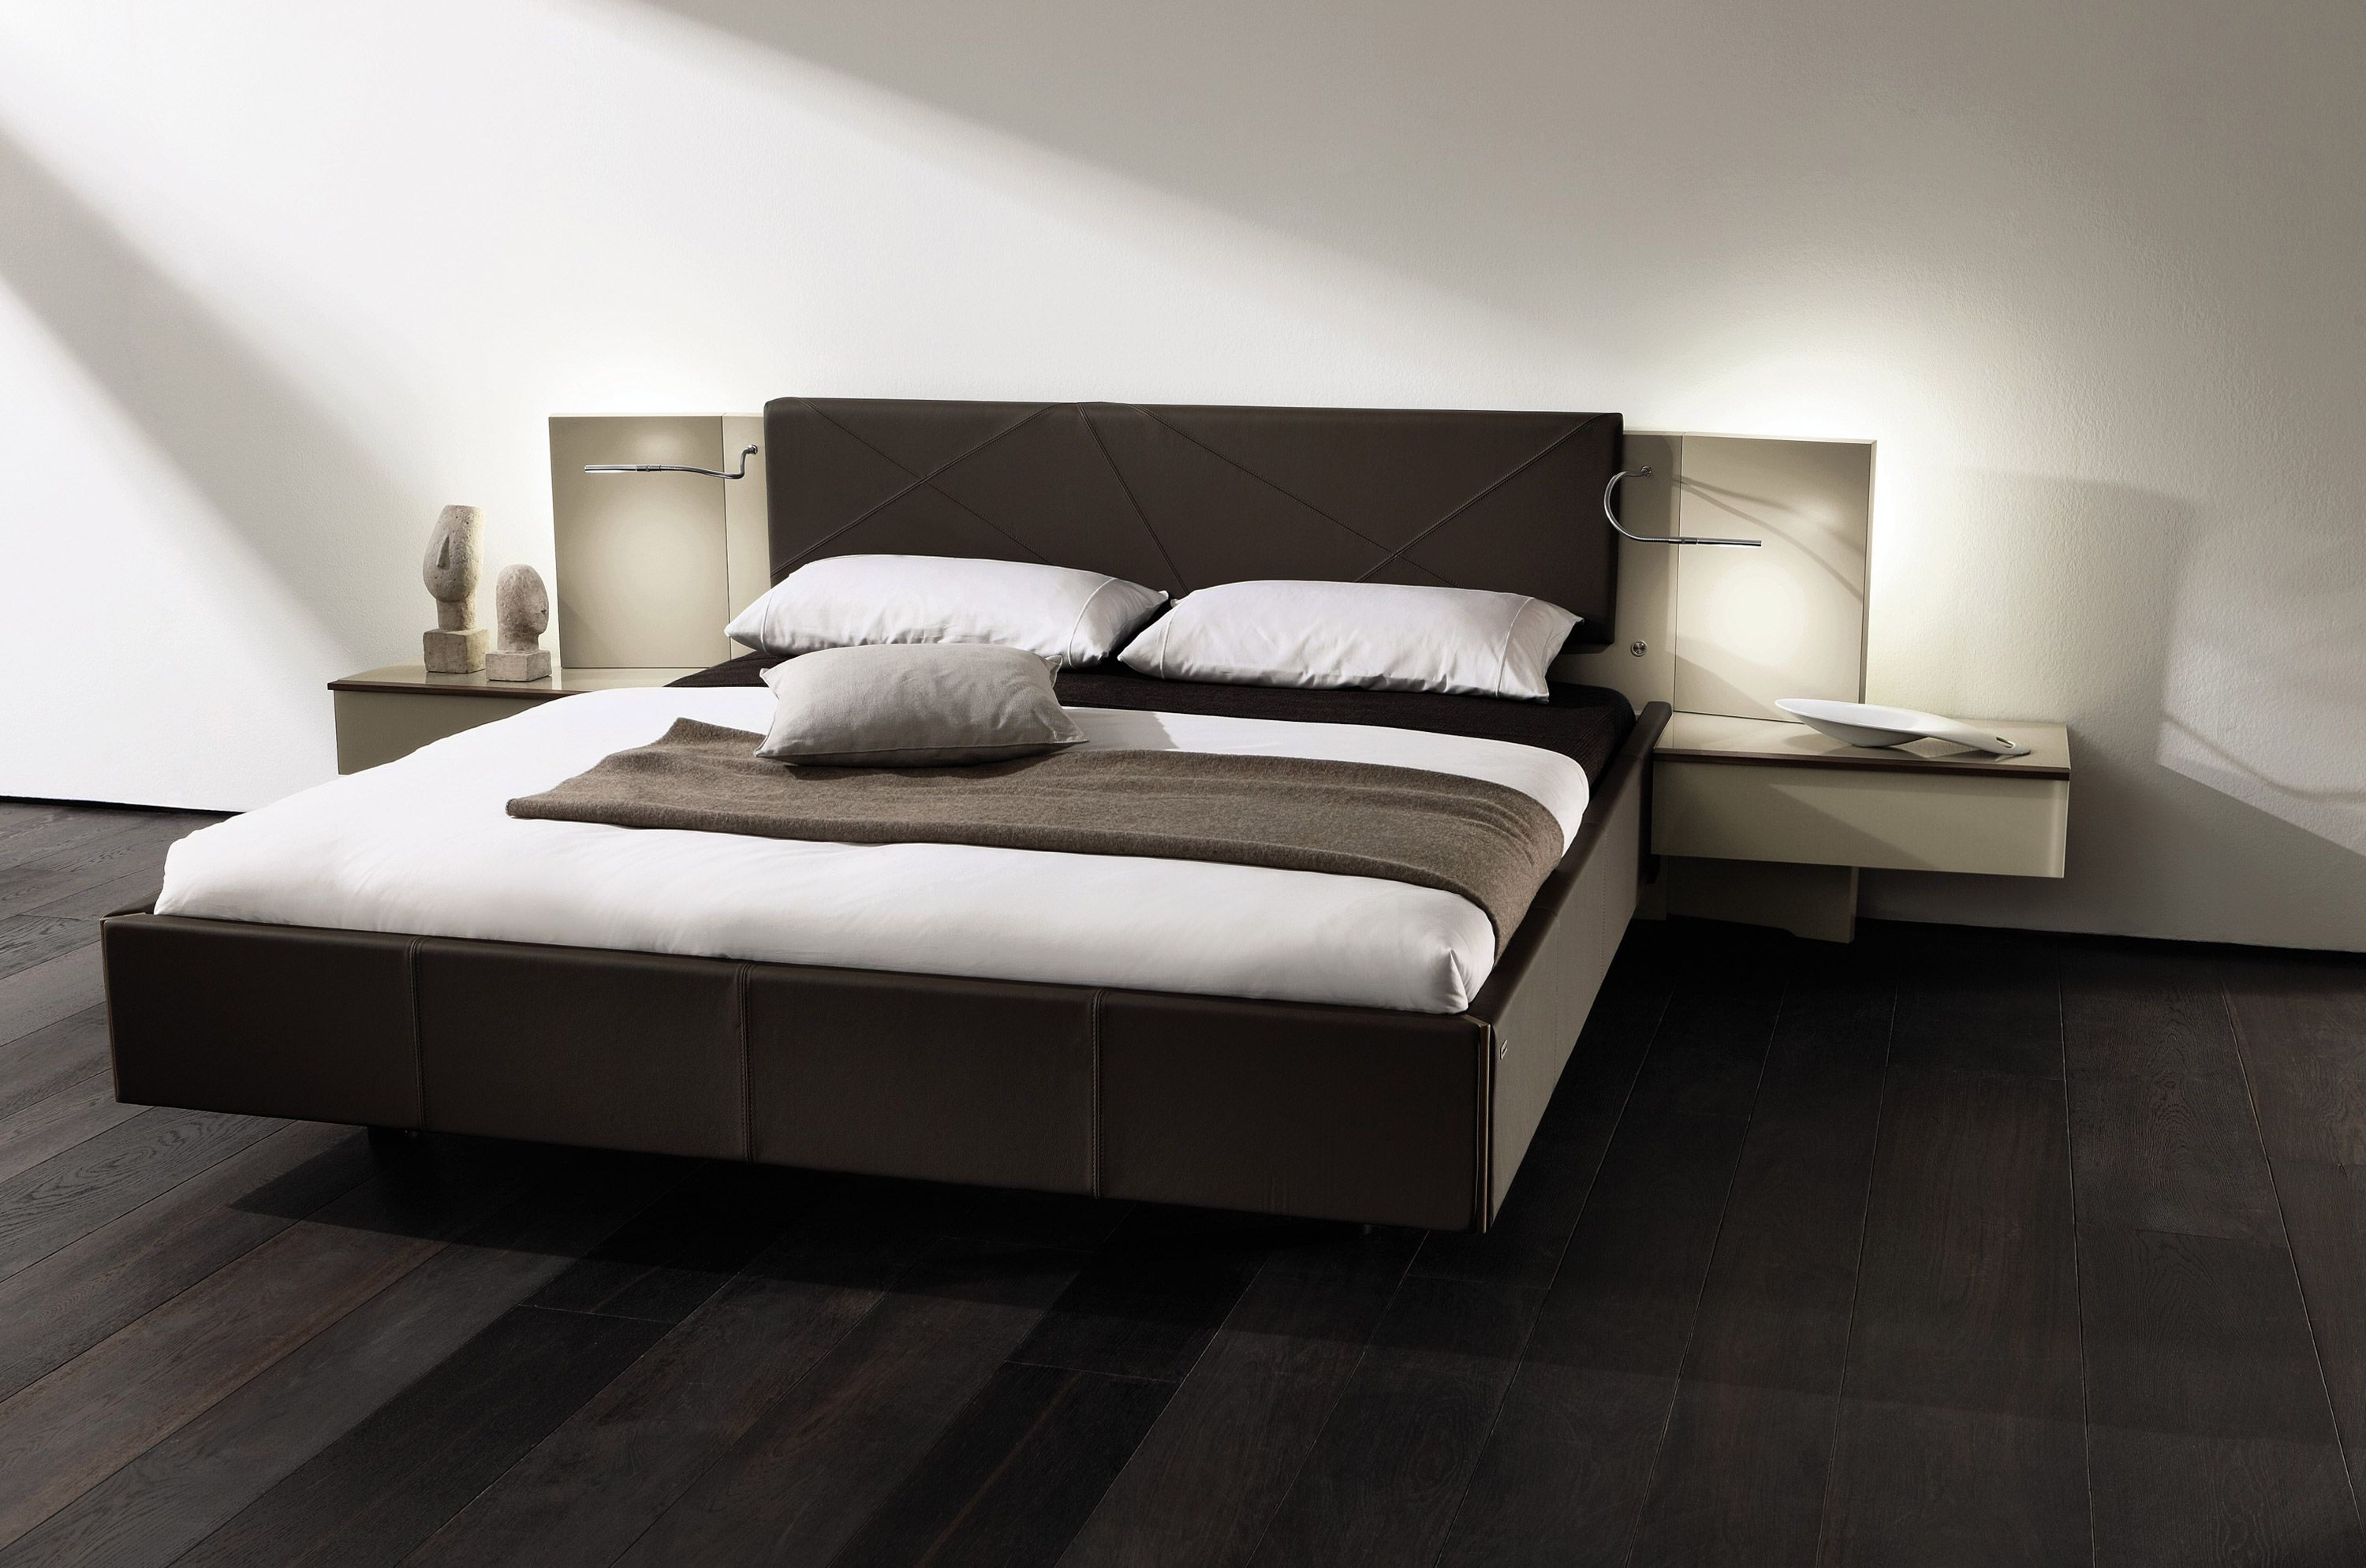 Hulsta Cutaro Bed With Built In Bedside Tables And Lights Bed